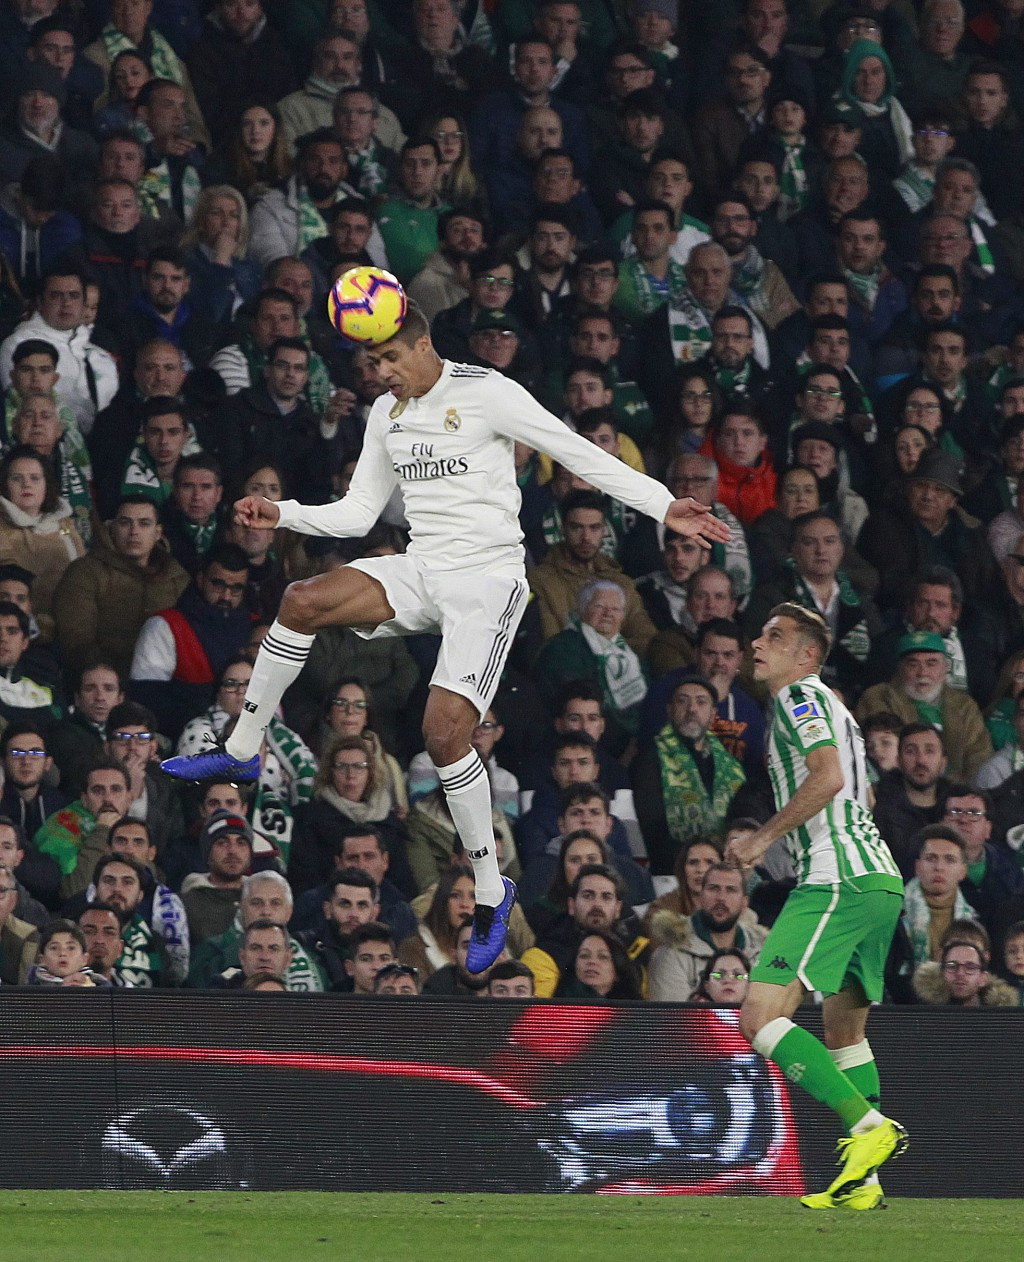 Real Madrid's Varane, left, jumps for the ball as Betis' Joaquin Sanchez looks on during La Liga soccer match at the Villamarin stadium in Seville, Sp